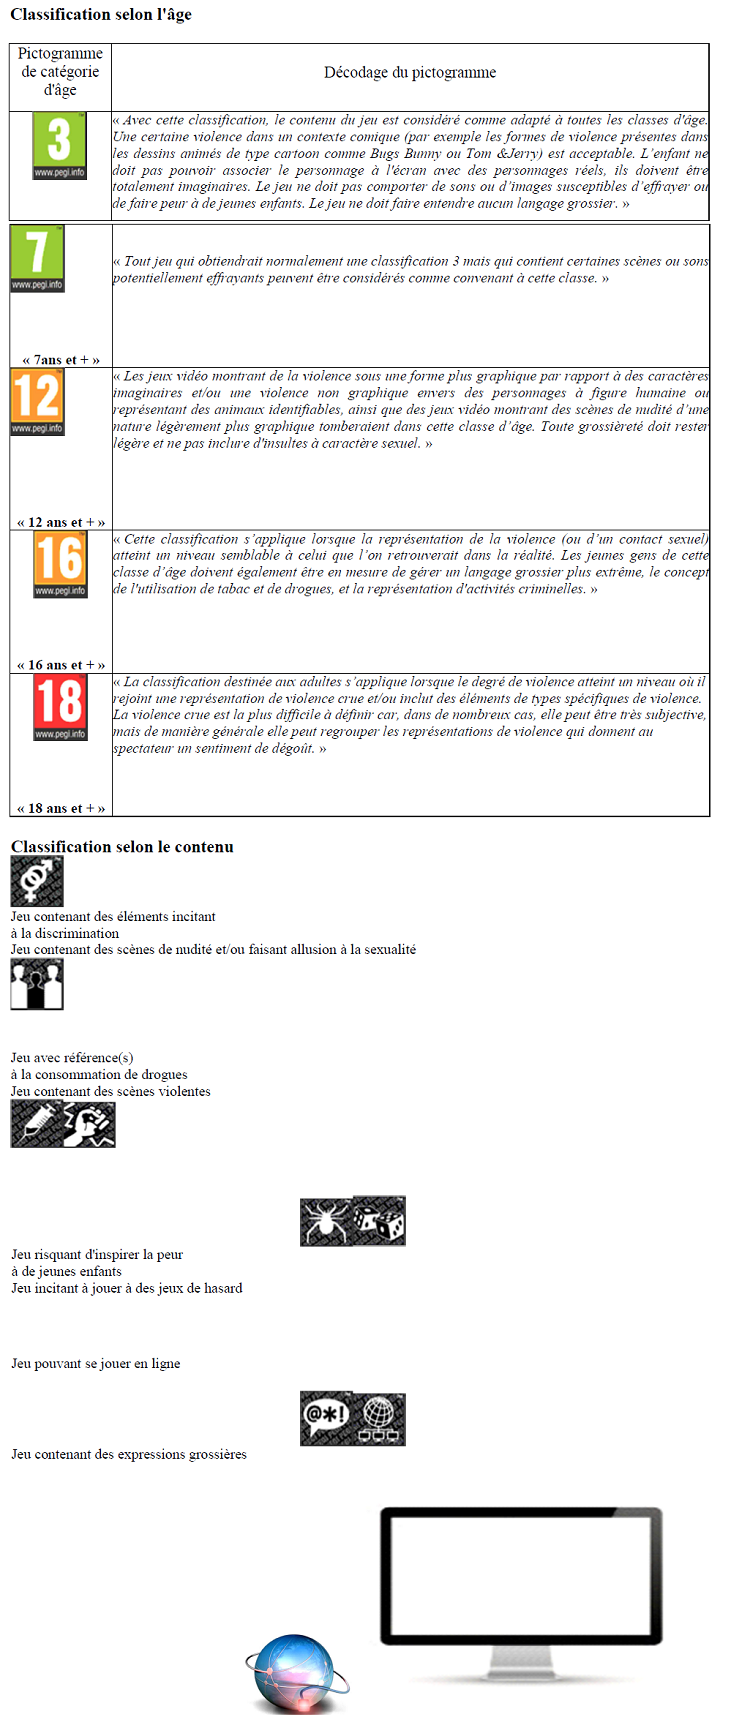 Système de classification du pan european game information